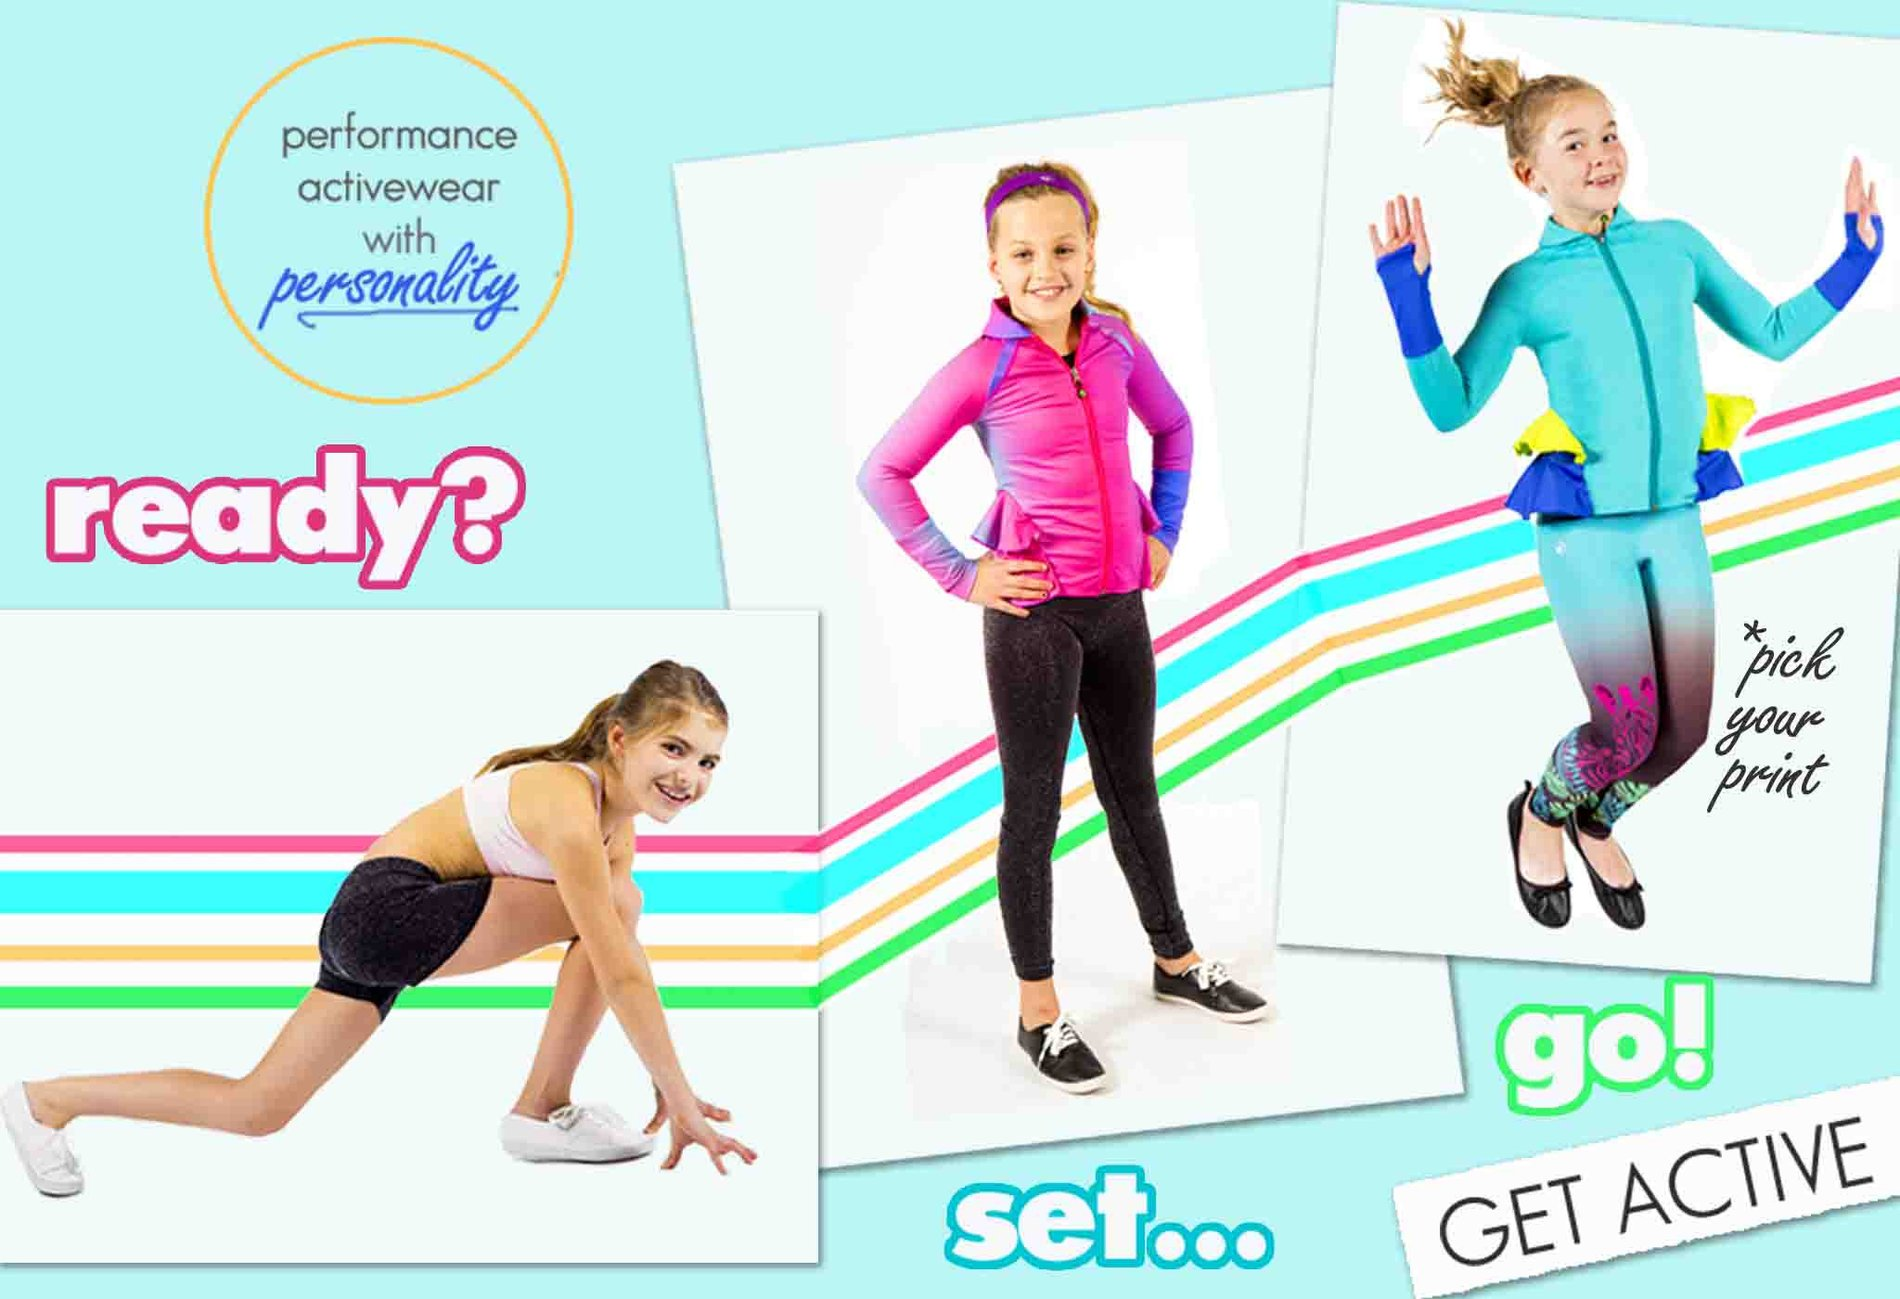 25% Off Sale On All Activewear At Limeapple!